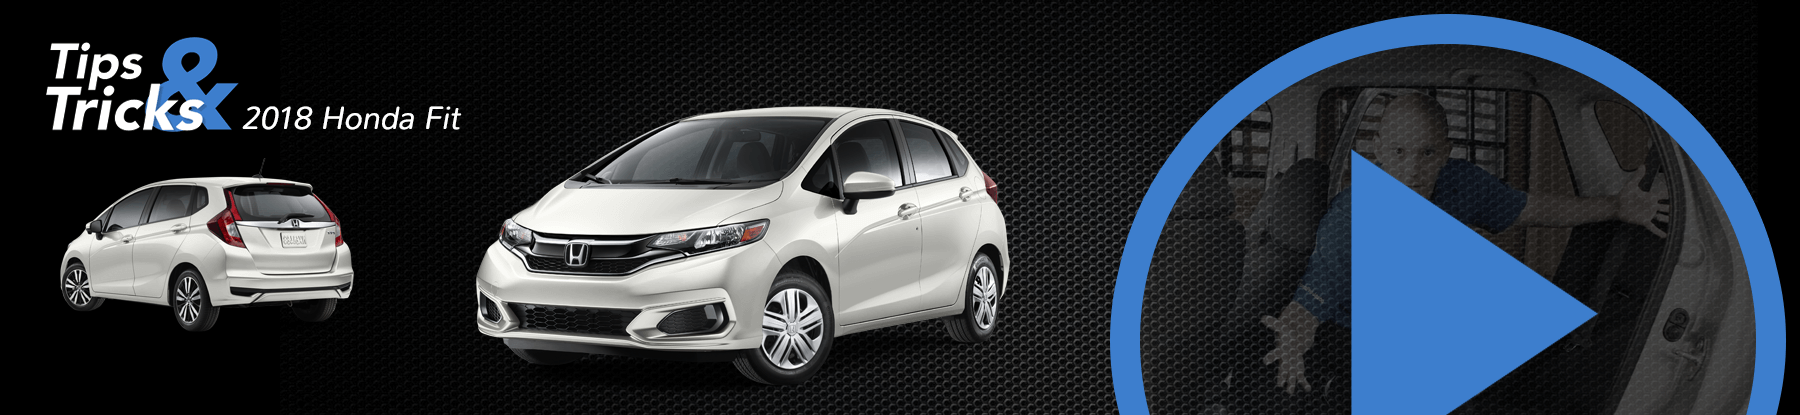 2018 Honda Fit Tips and Tricks Banner